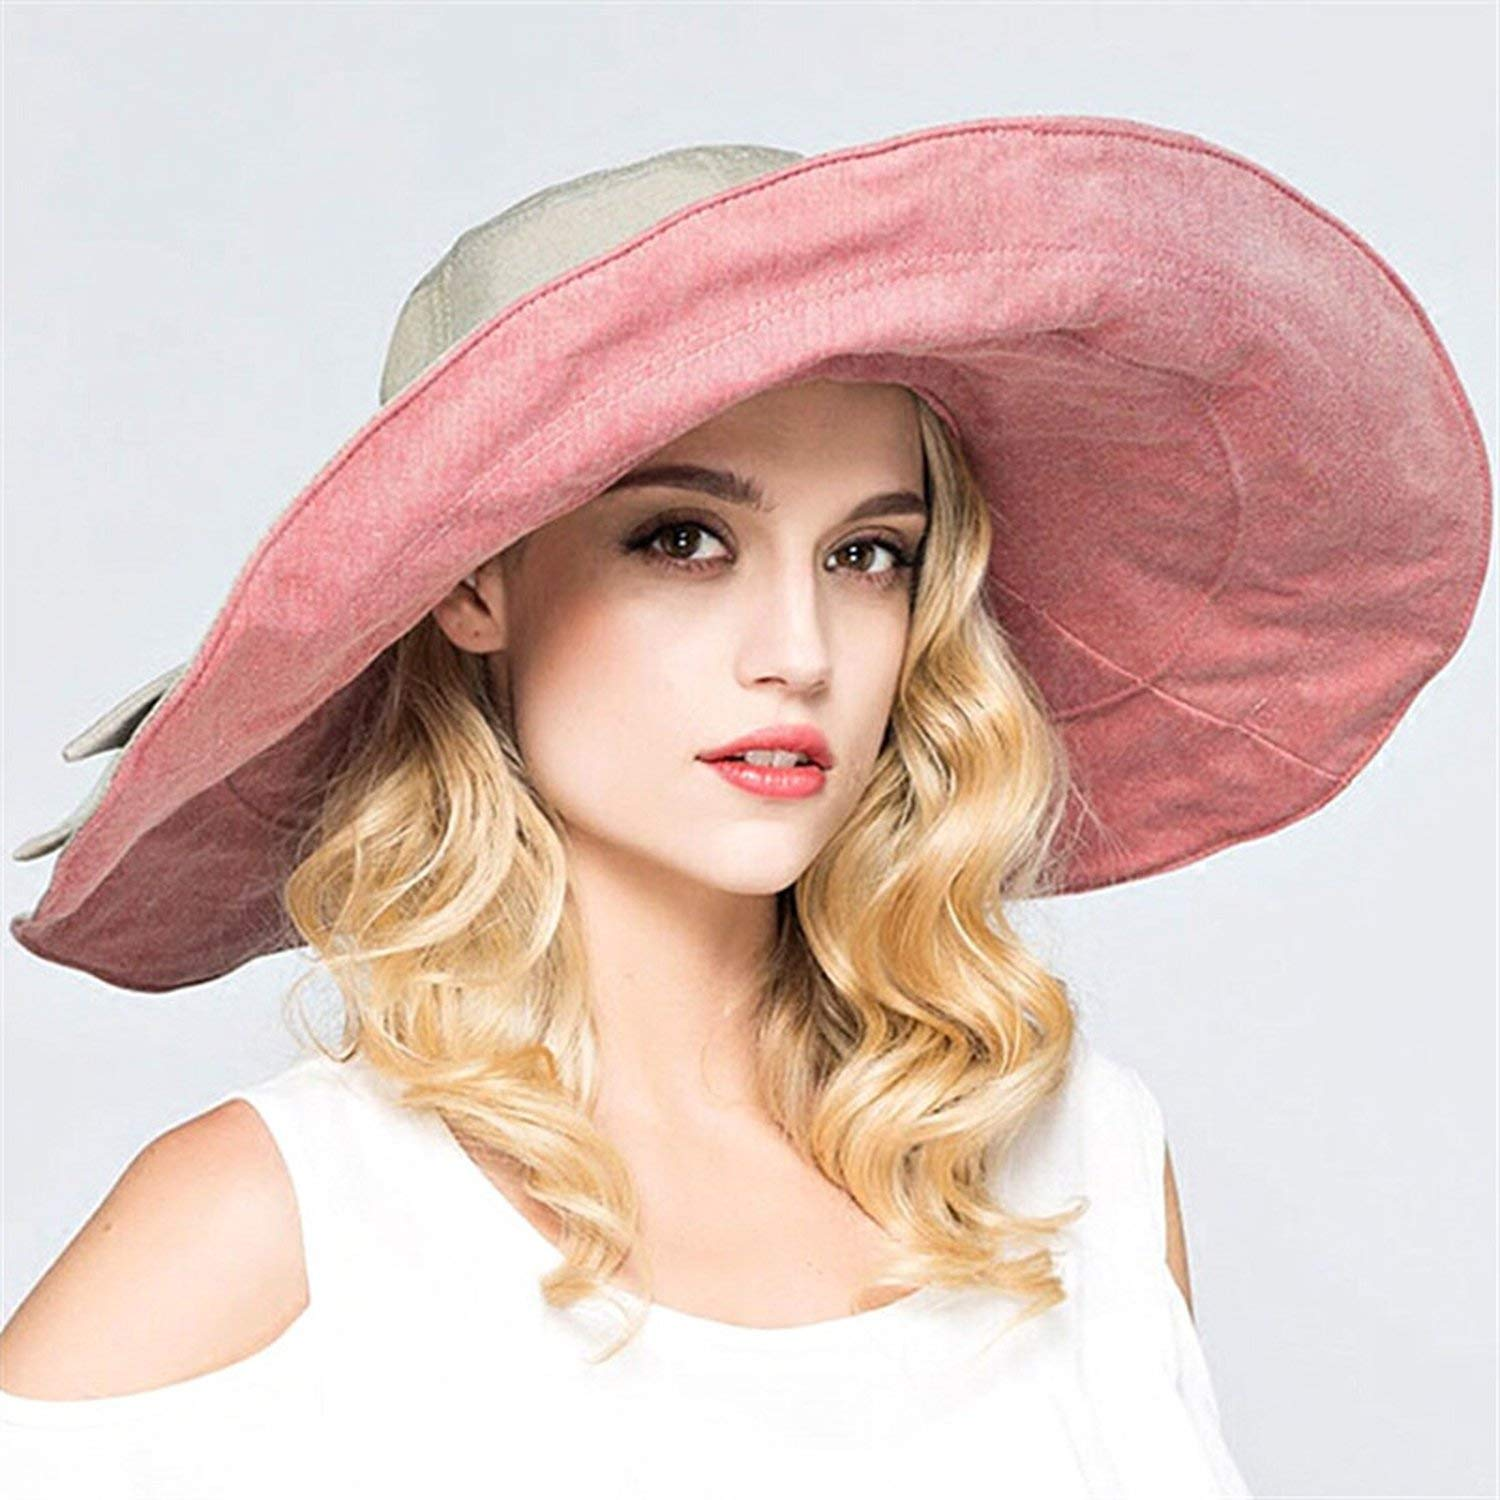 a664b10d88f Romantic moments Women s Beach Sun Hats Reversible Summer Superlarge Brim  England Style Sun Hat